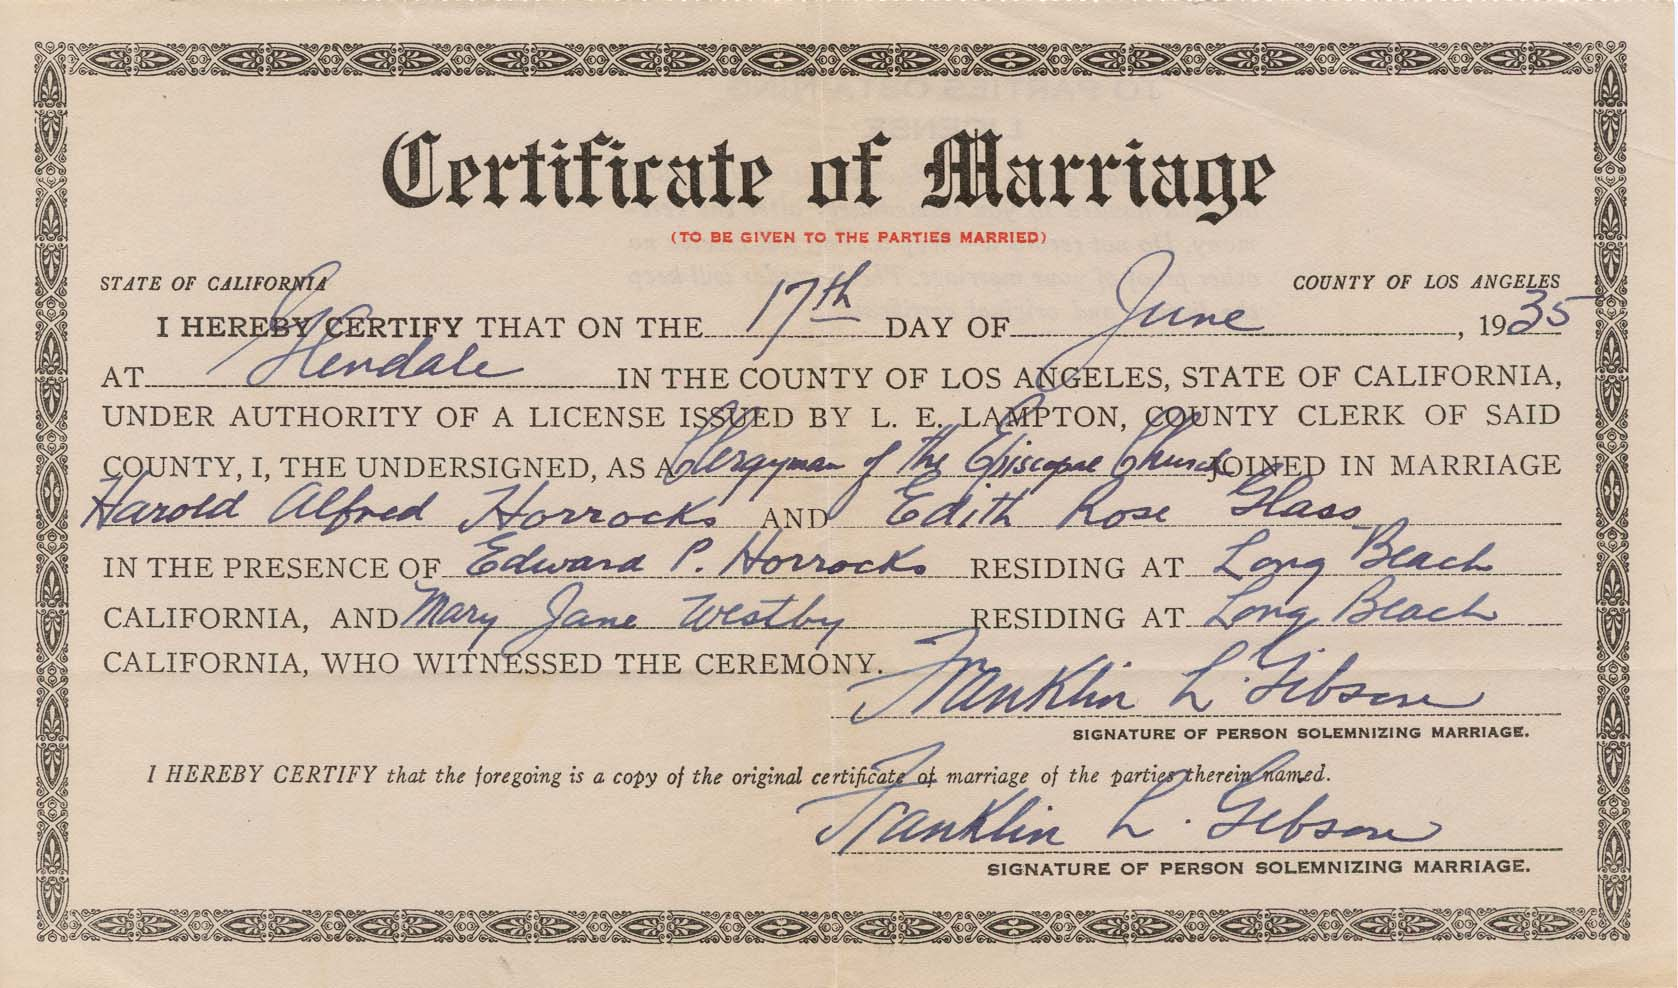 1935 Marriage Certificate Harold Horrocks Pat Glass Our Family